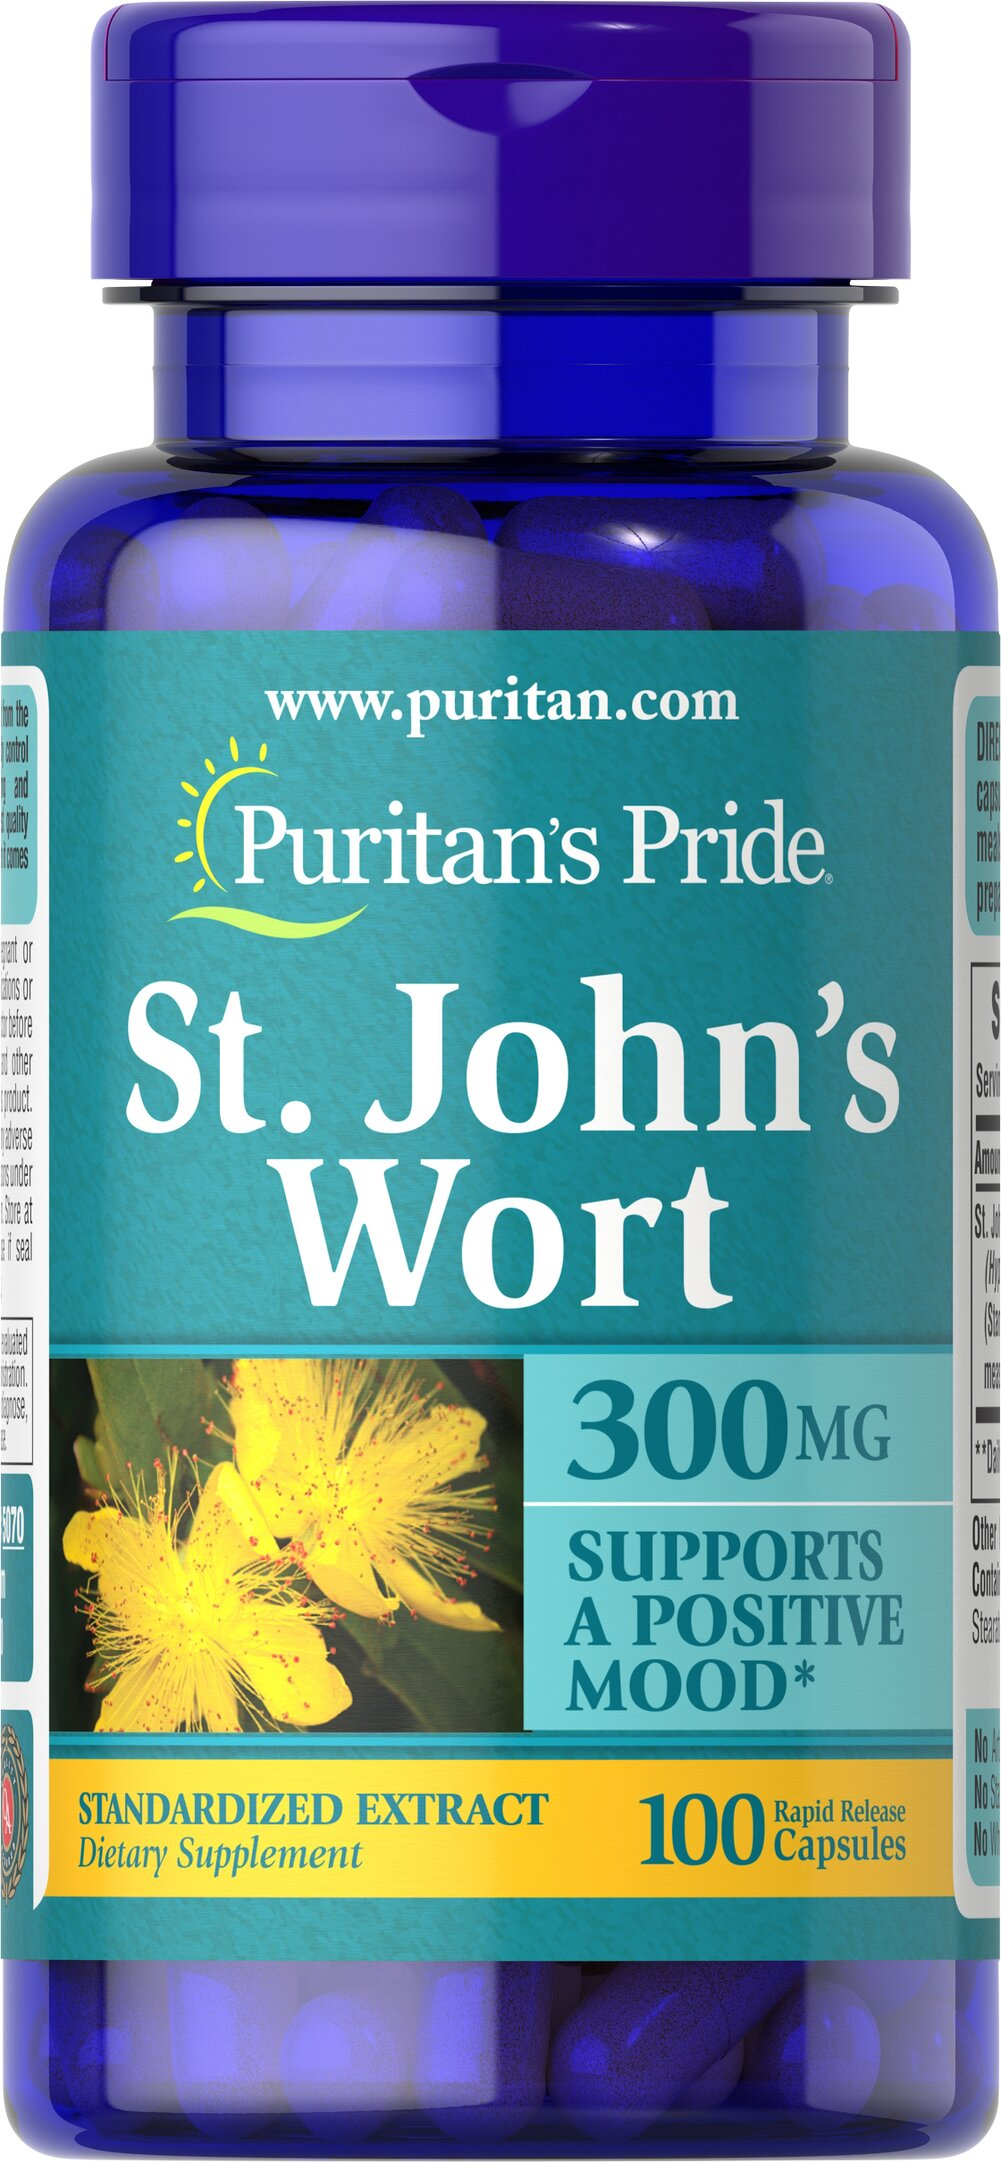 St. John's Wort Standardized Extract 300 mg  100 Capsules 300 mg $18.99